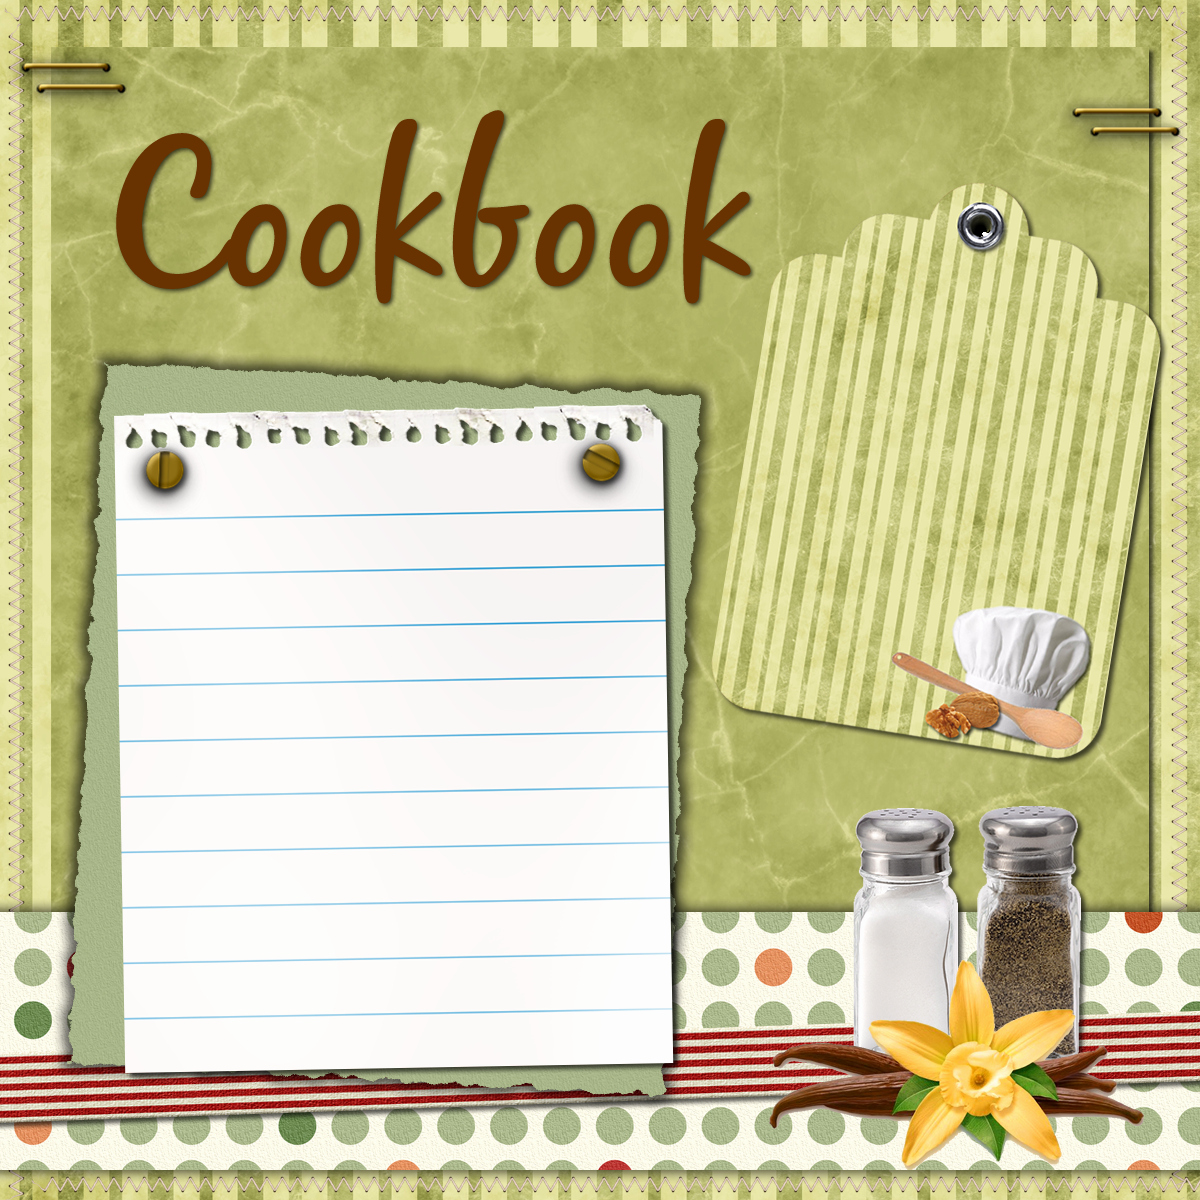 Digital Scrapbooking Cookbook Recipe Freebies and Try It